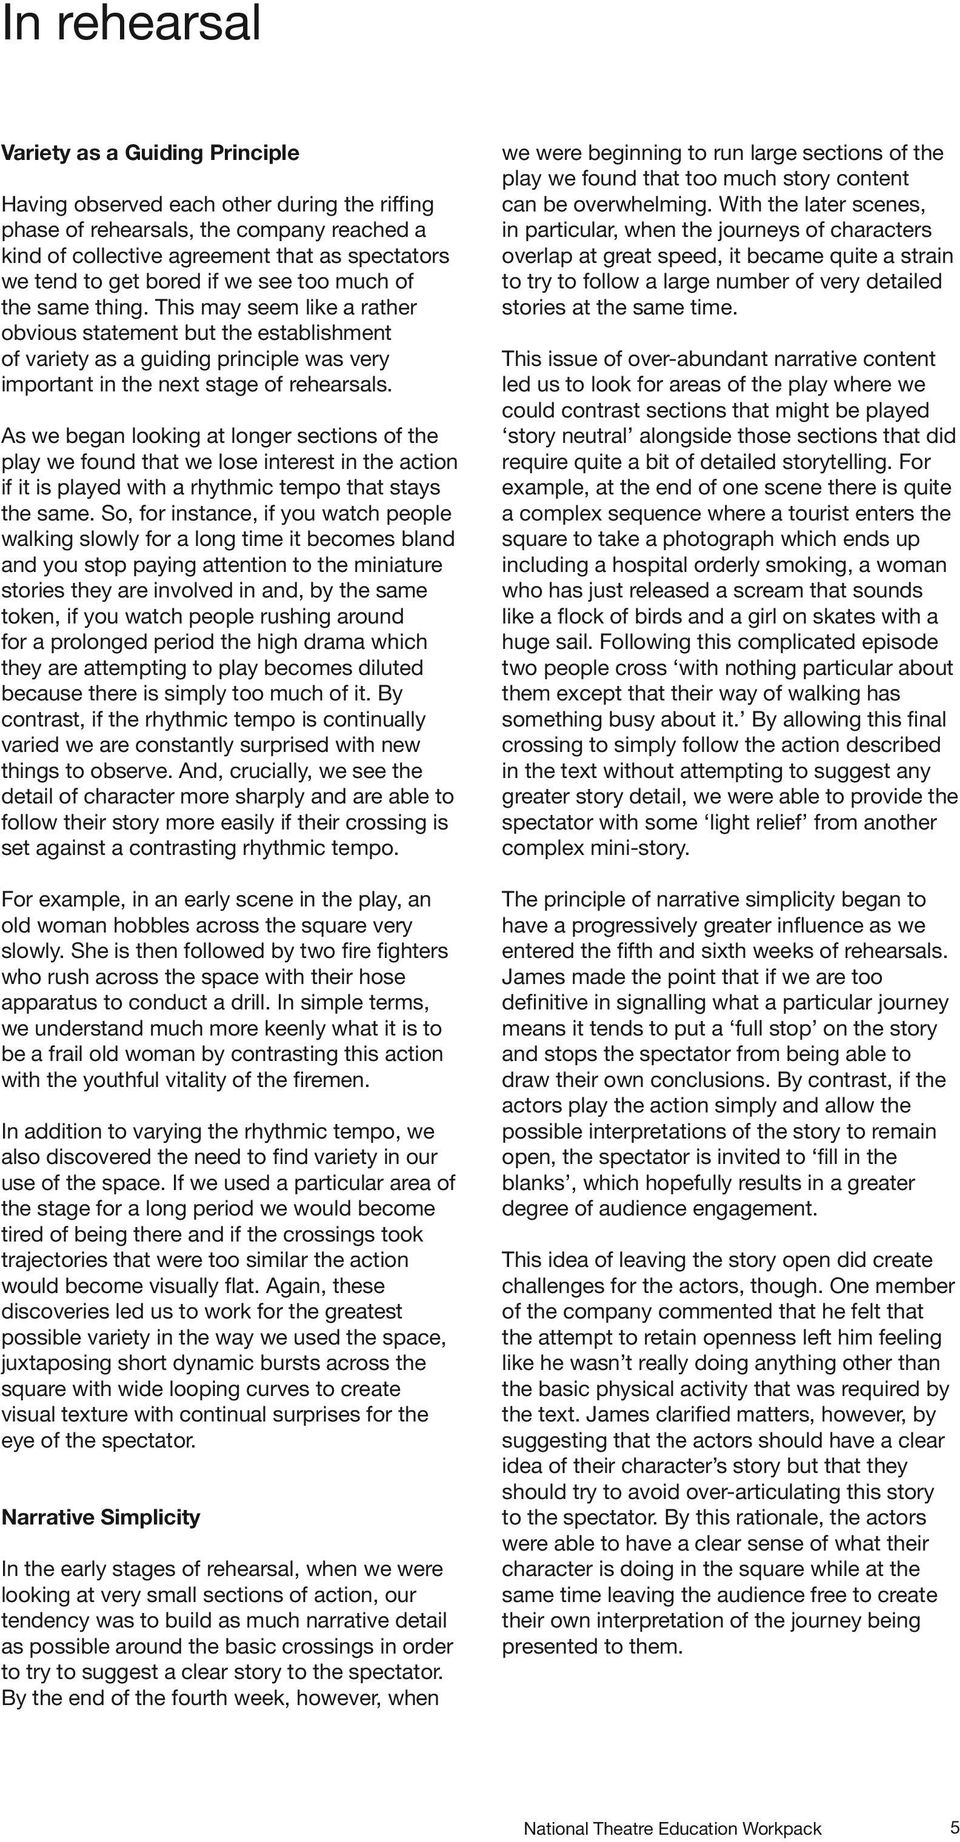 As we began looking at longer sections of the play we found that we lose interest in the action if it is played with a rhythmic tempo that stays the same.